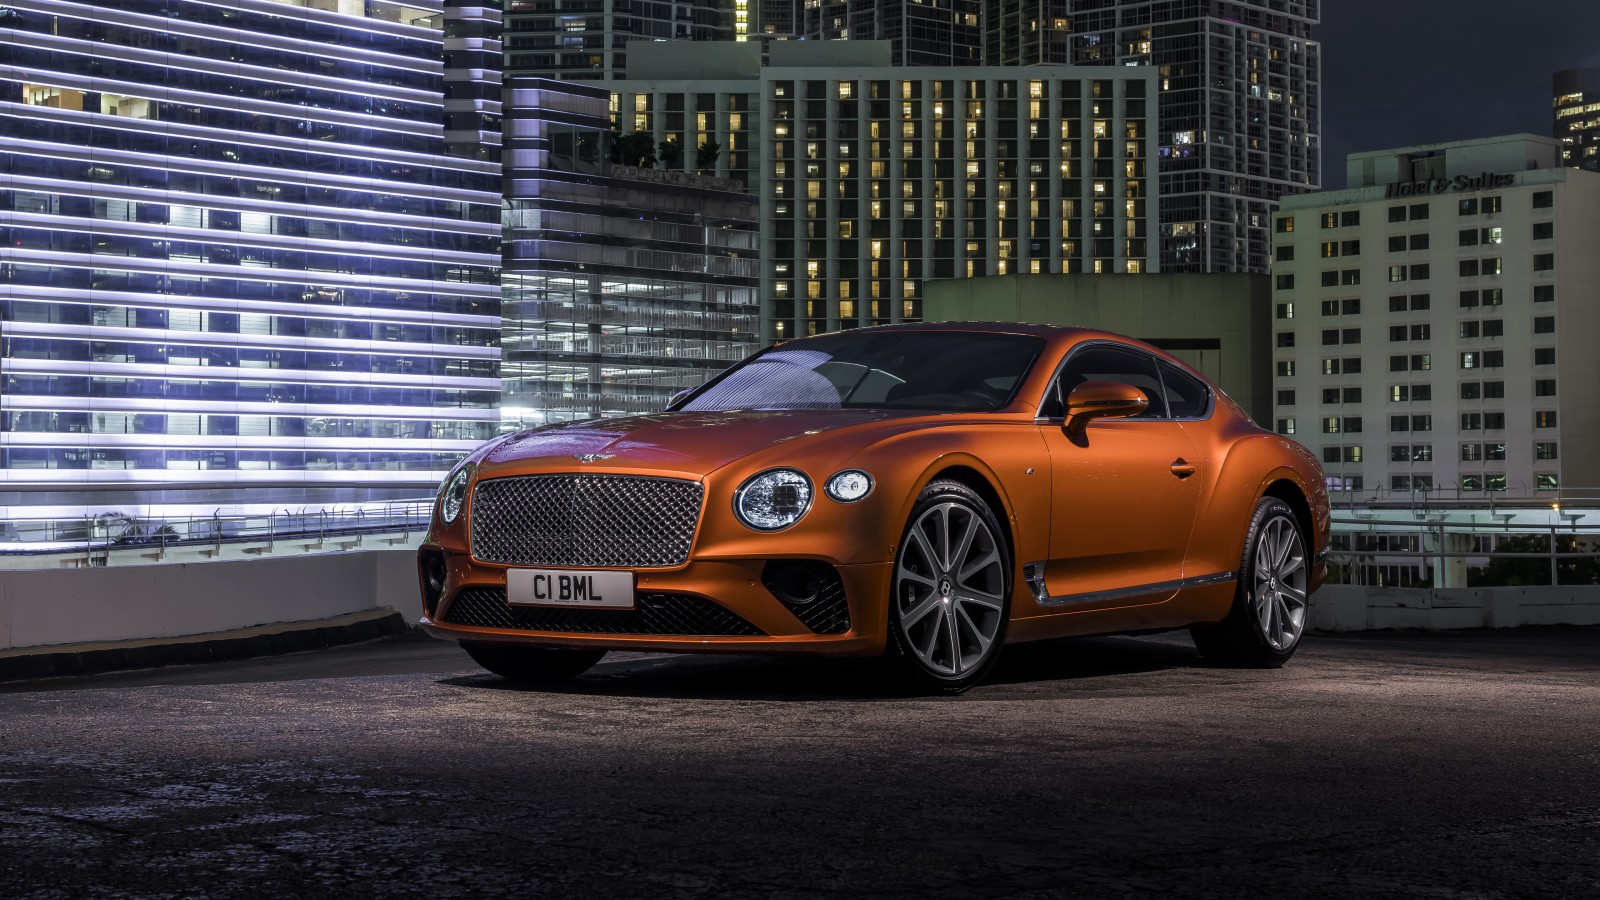 Bentley Continental GT V8 2019 4K Wallpaper